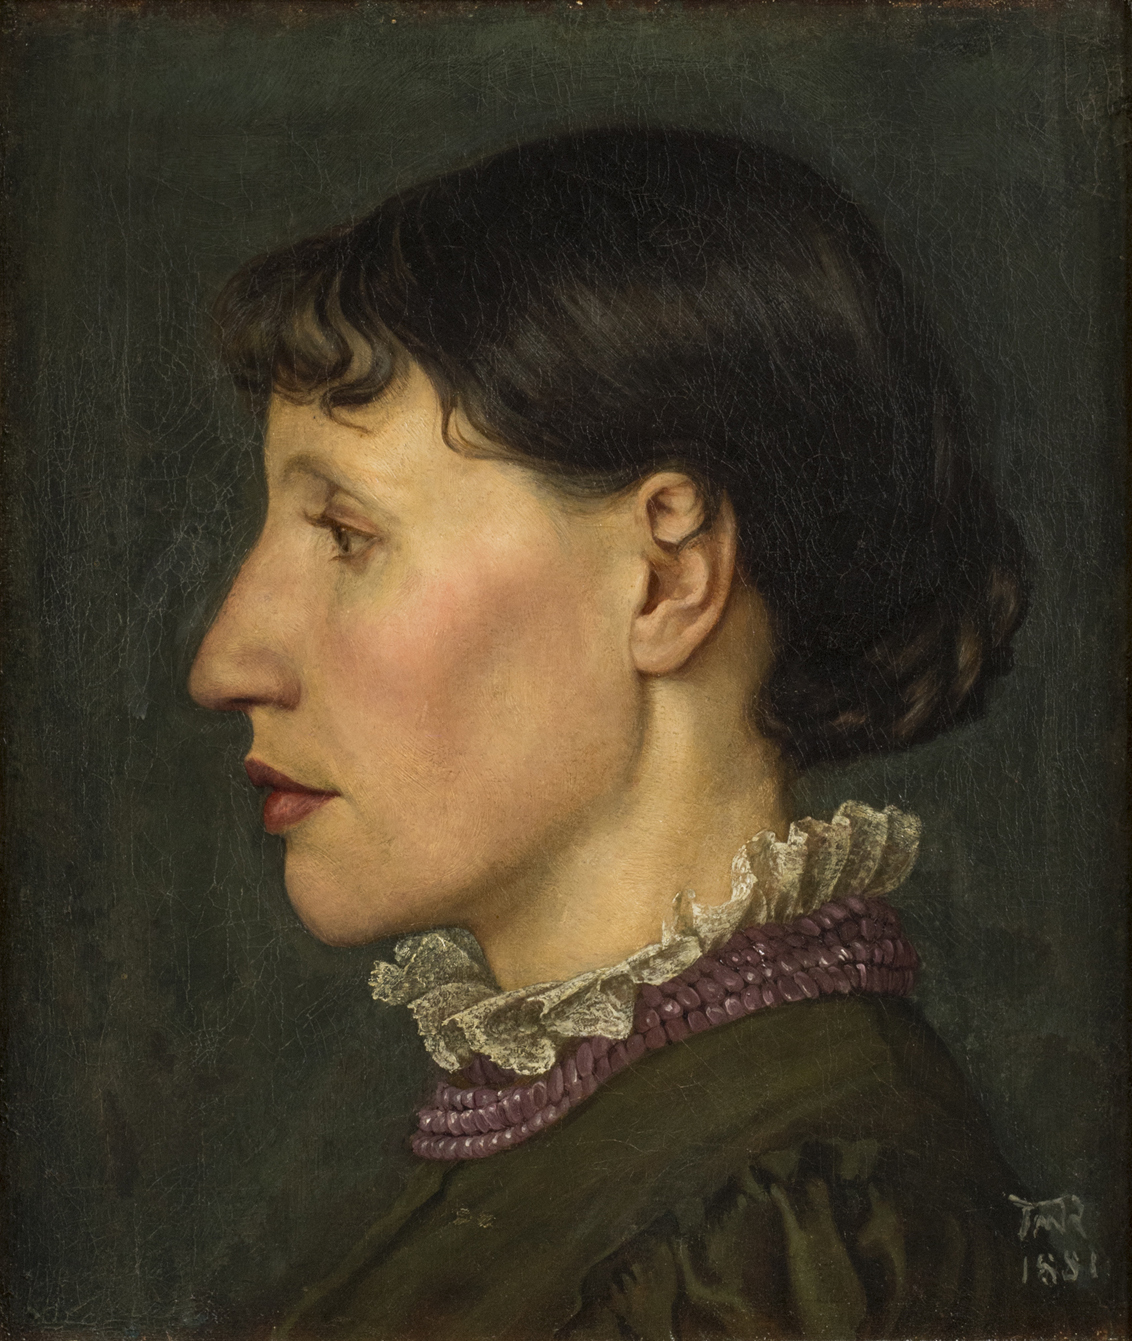 Thomas Matthews Rooke  (b. 1842)  Portrait of Leonora Jane Rooke, the Artist's Wife  14 ⅛ x 12 ⅛ in. oil on canvas